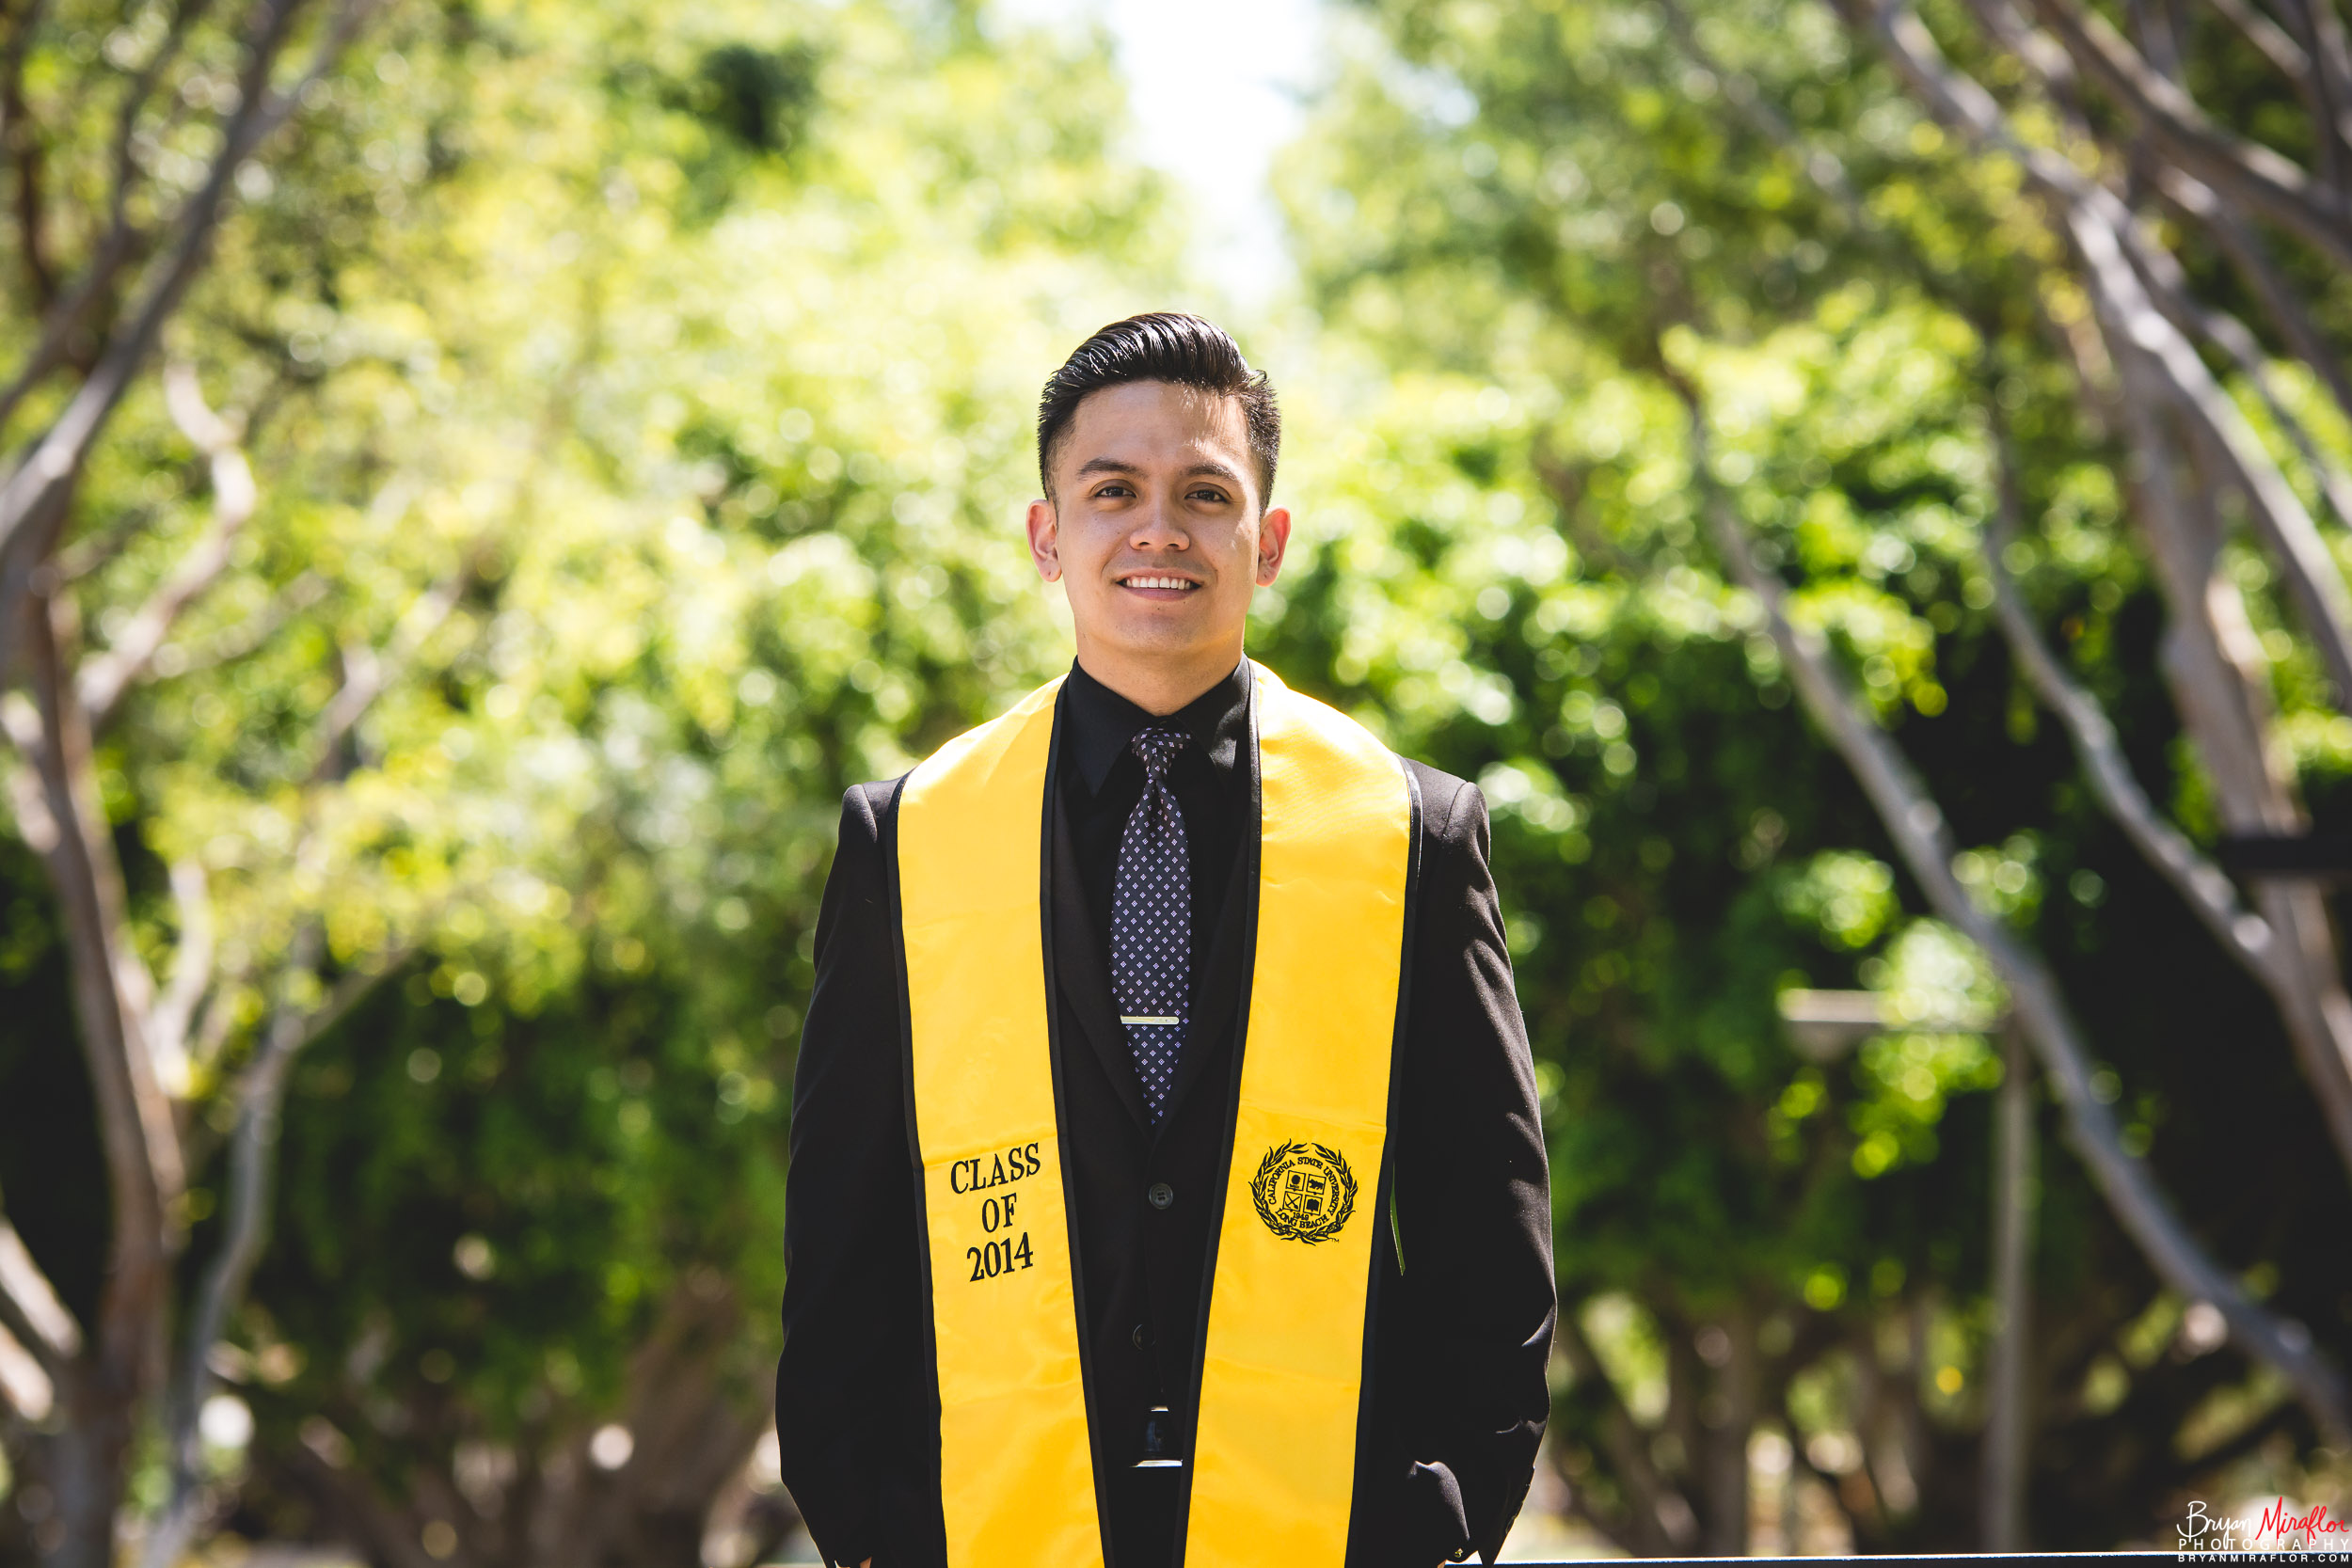 0215-Bryan-Miraflor-Photography-Tejero-Grad-Portraits-Long-Beach-CSULB-0018.jpg